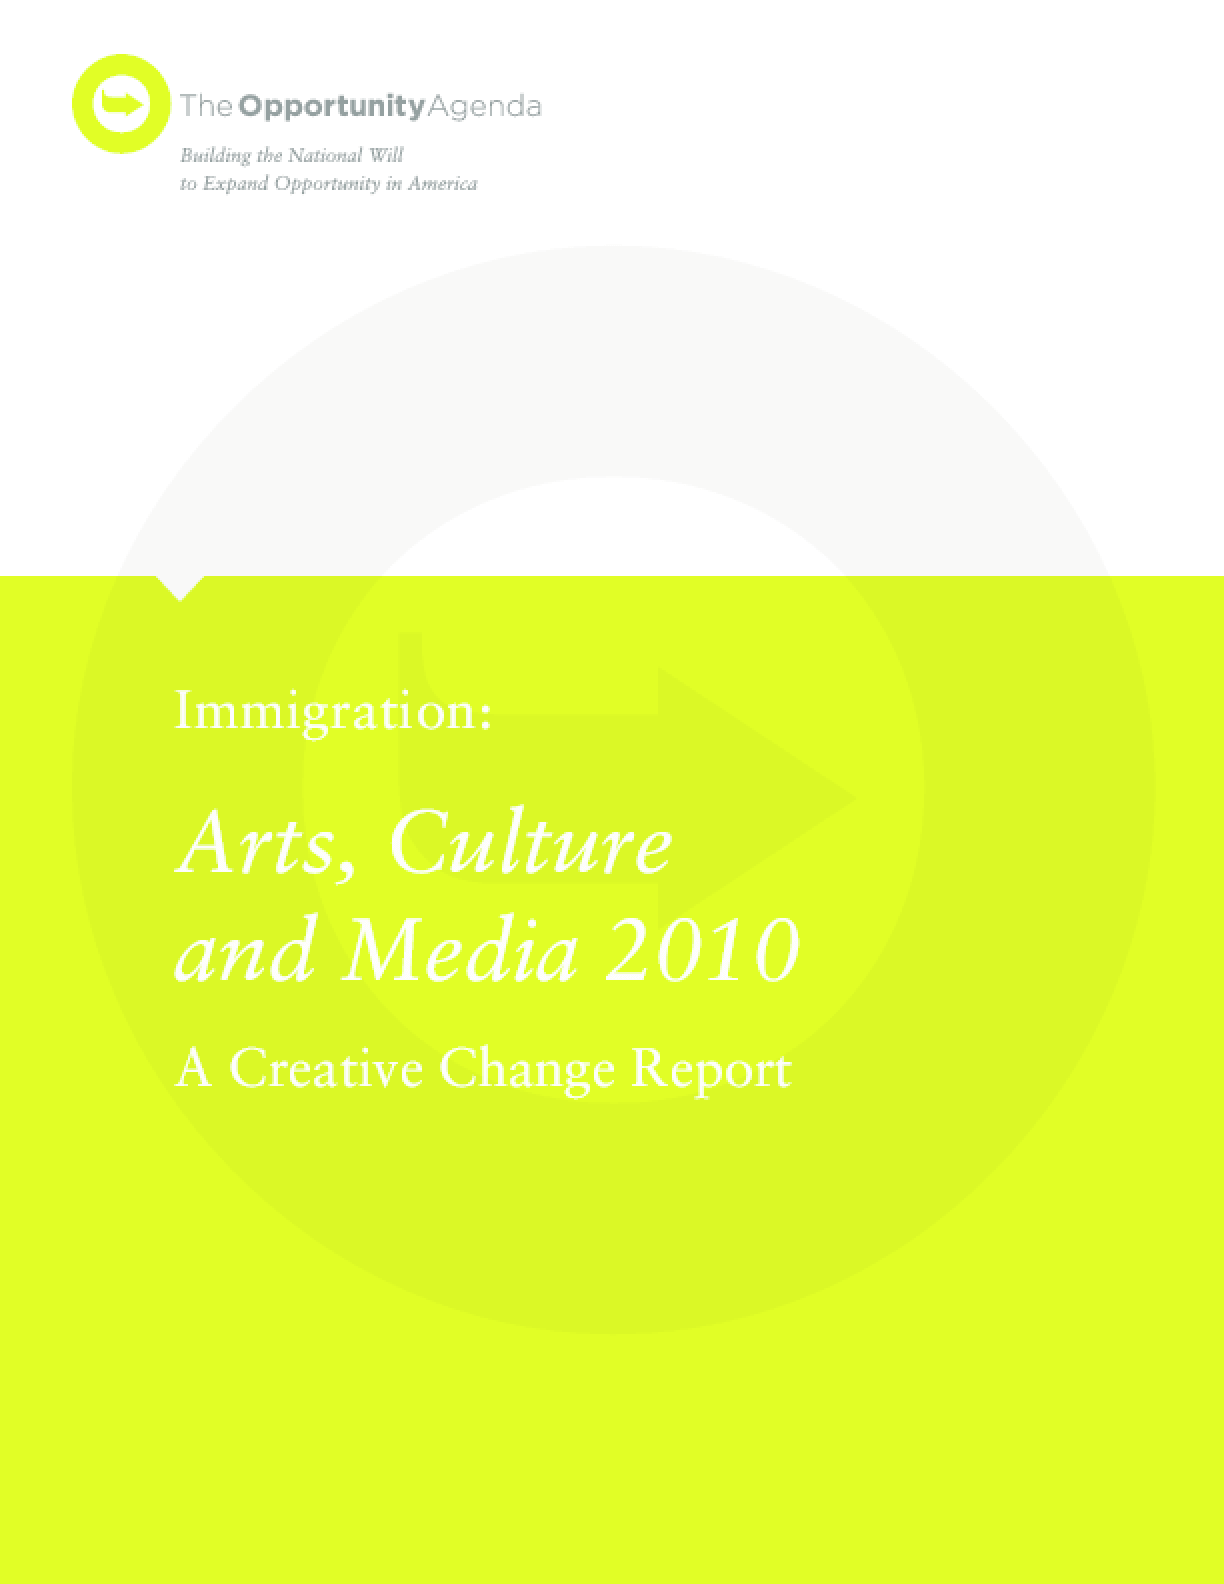 Immigration: Arts, Culture and Media 2010 - A Creative Change Report